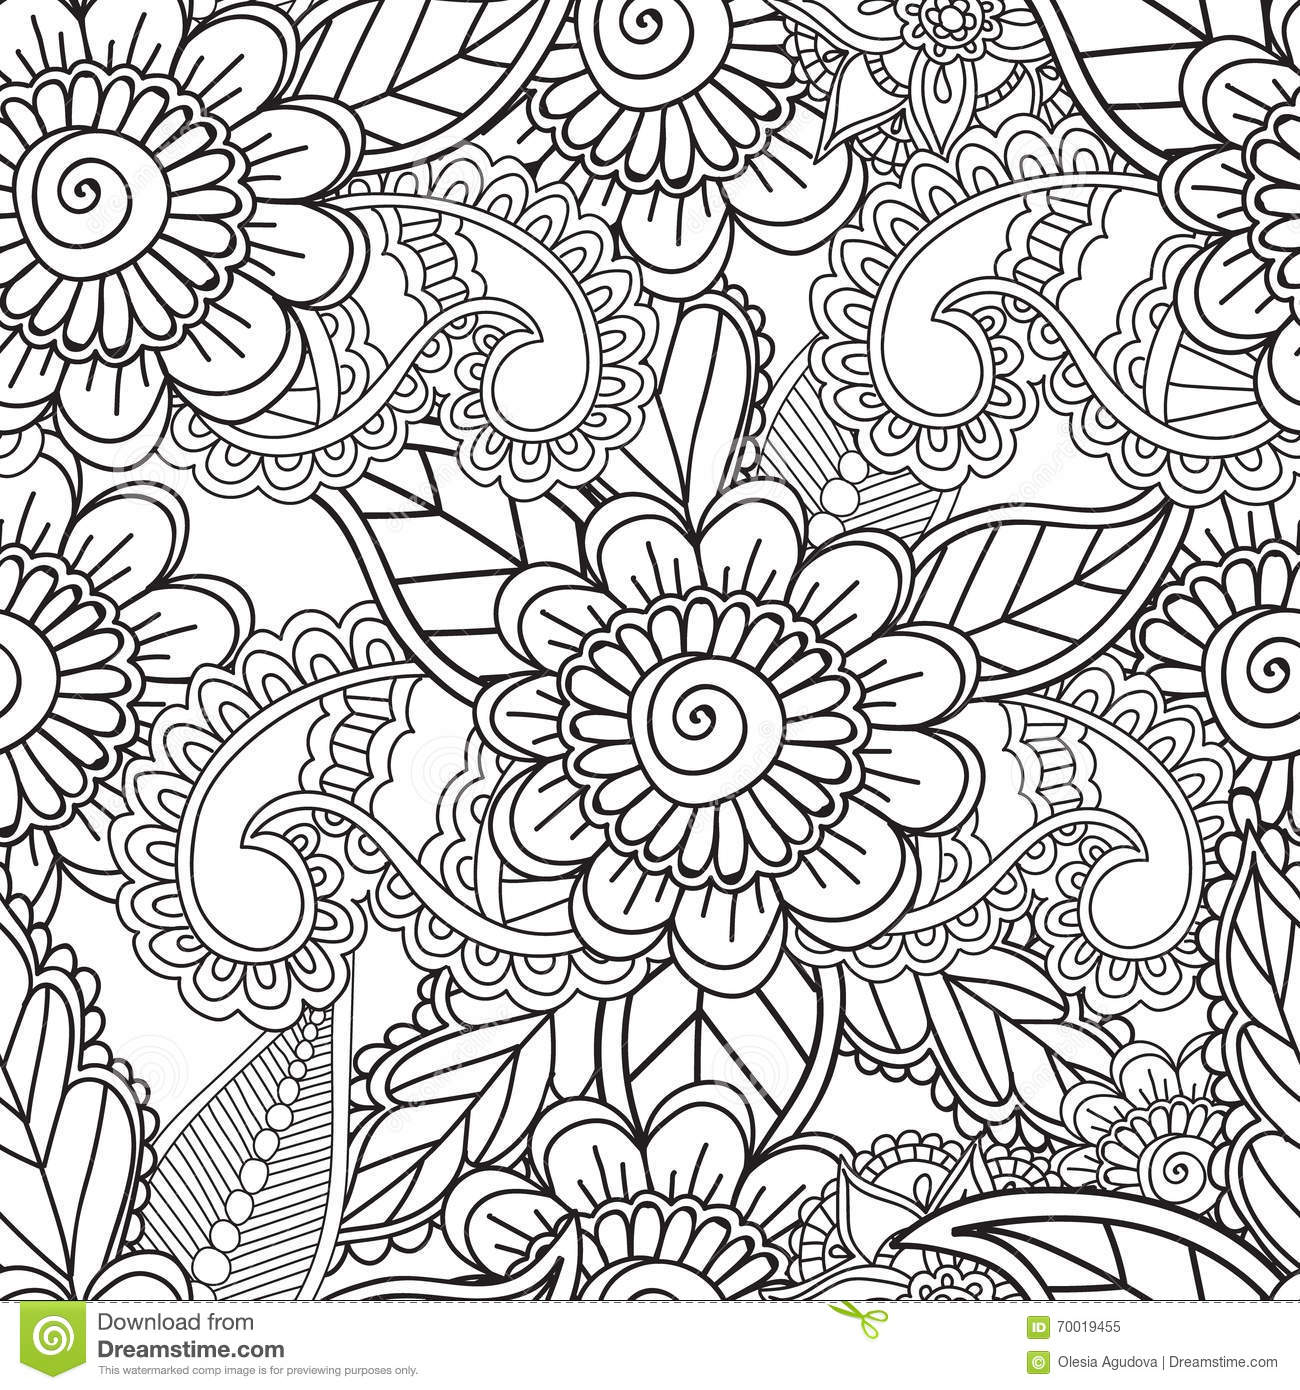 coloring pages adults seamles henna mehndi doodles abstract floral elements seamless pattern paisley design mandala vector